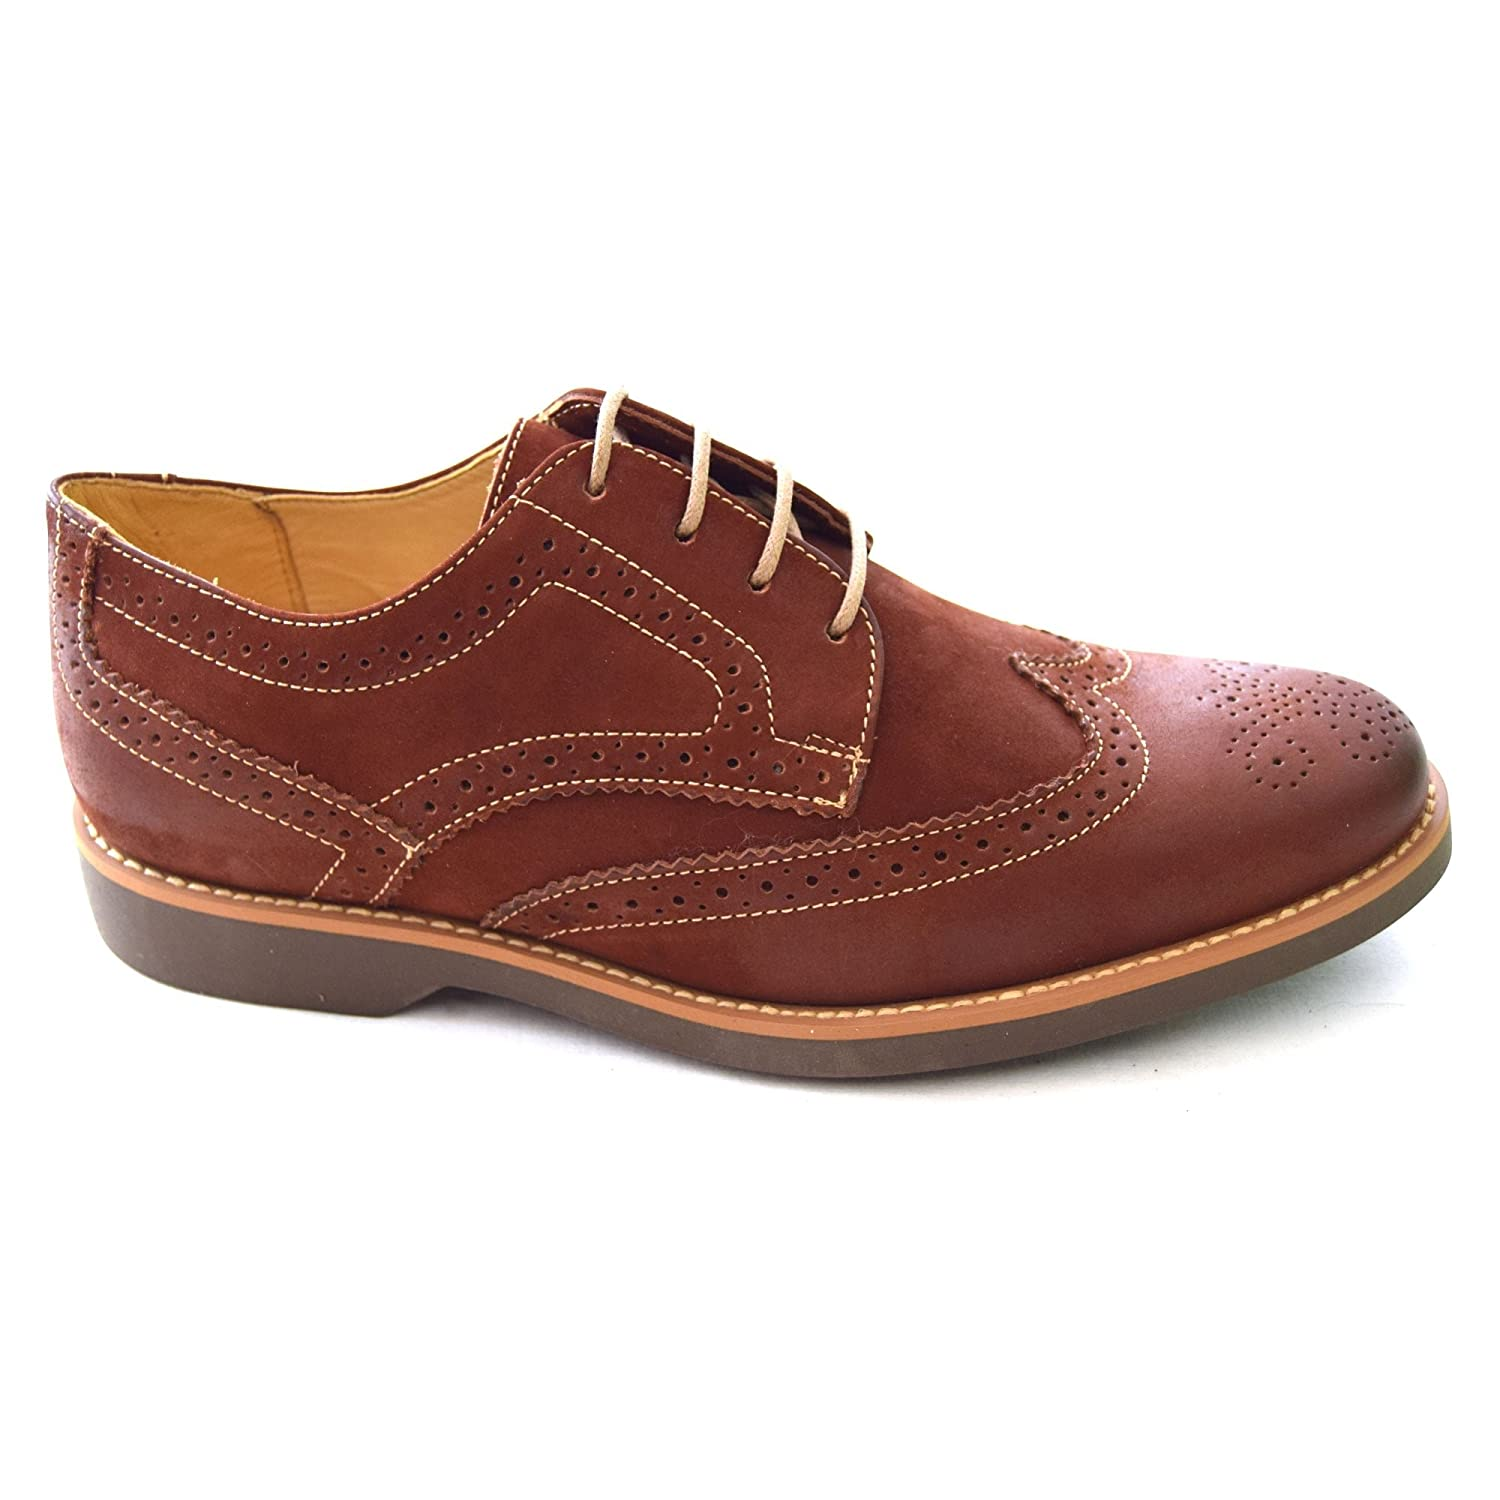 Anatomic & Co Tucano Black Leather Brogues Rust